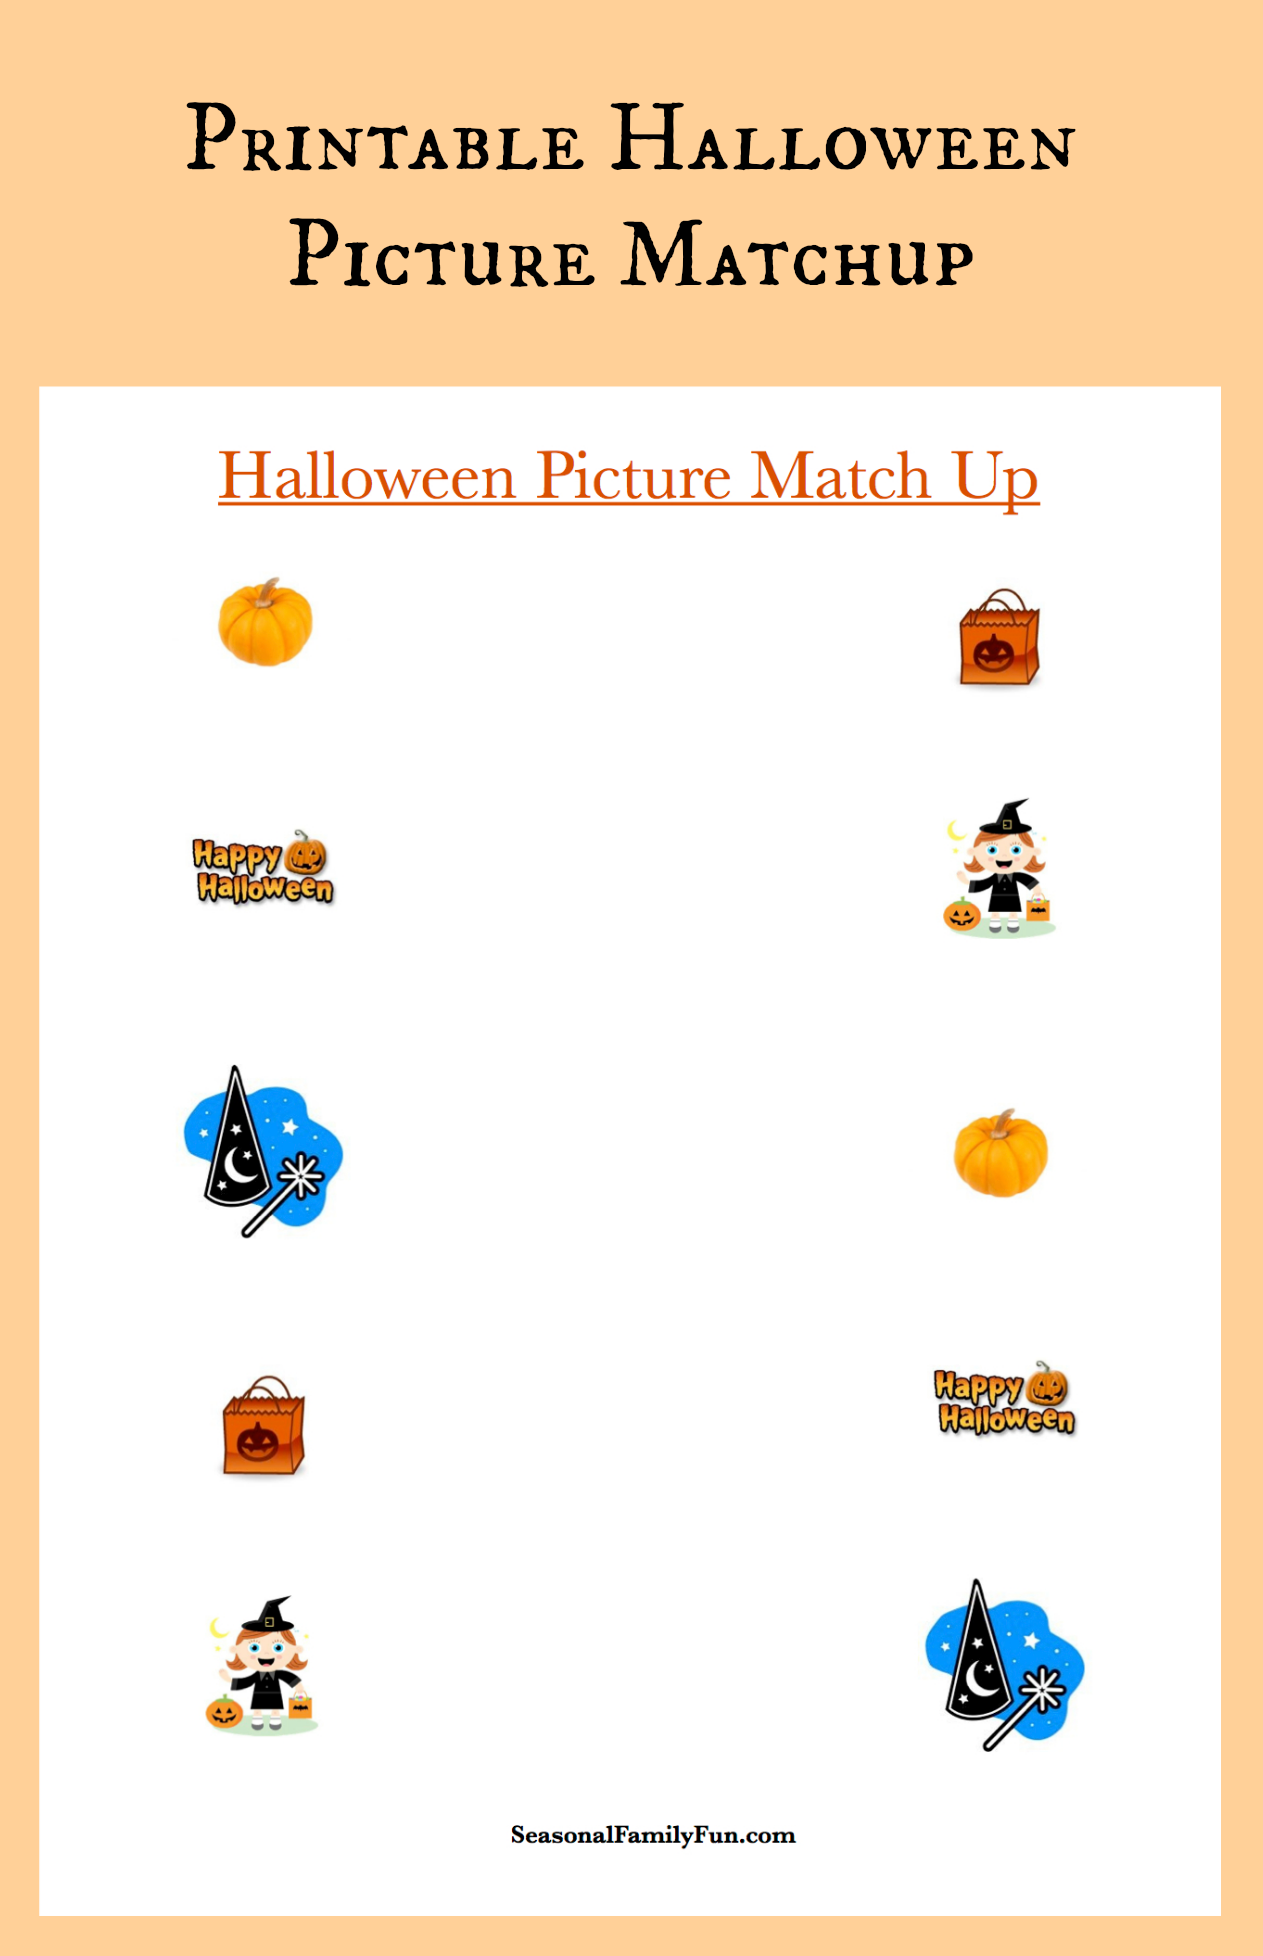 Free Printable Halloween Matchup Perfect For School